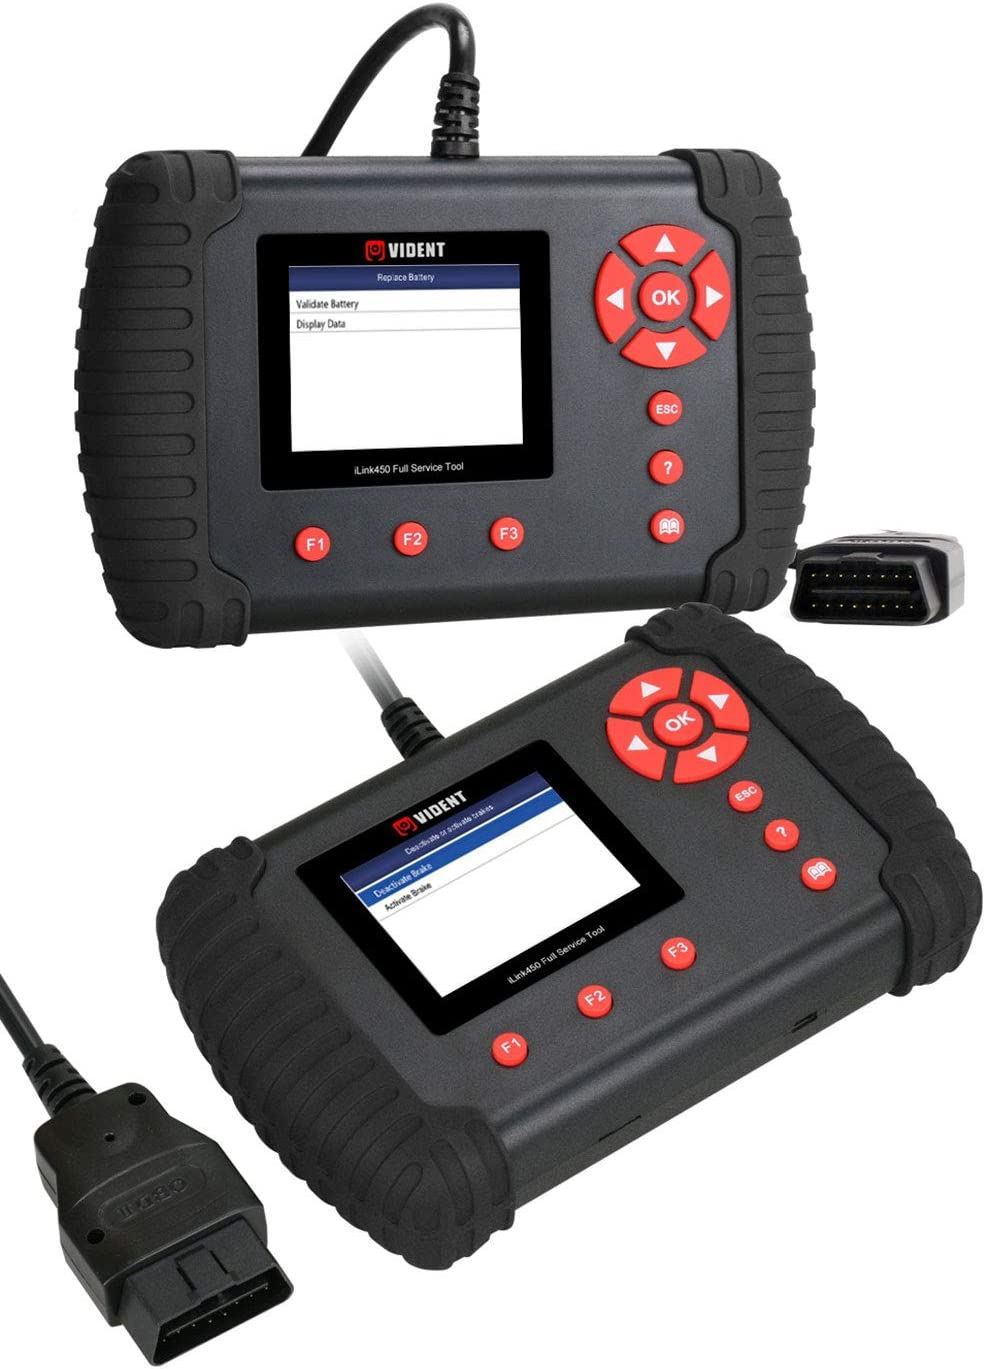 VIDENT Ilink450 Sistema Completo OBD-II Engine System Strumenti diagnostici EPB Service Oil Light ABS airbag SRS TBA//TPS SAS Reset BRT Dpf Reeneration Code Reader Scanner